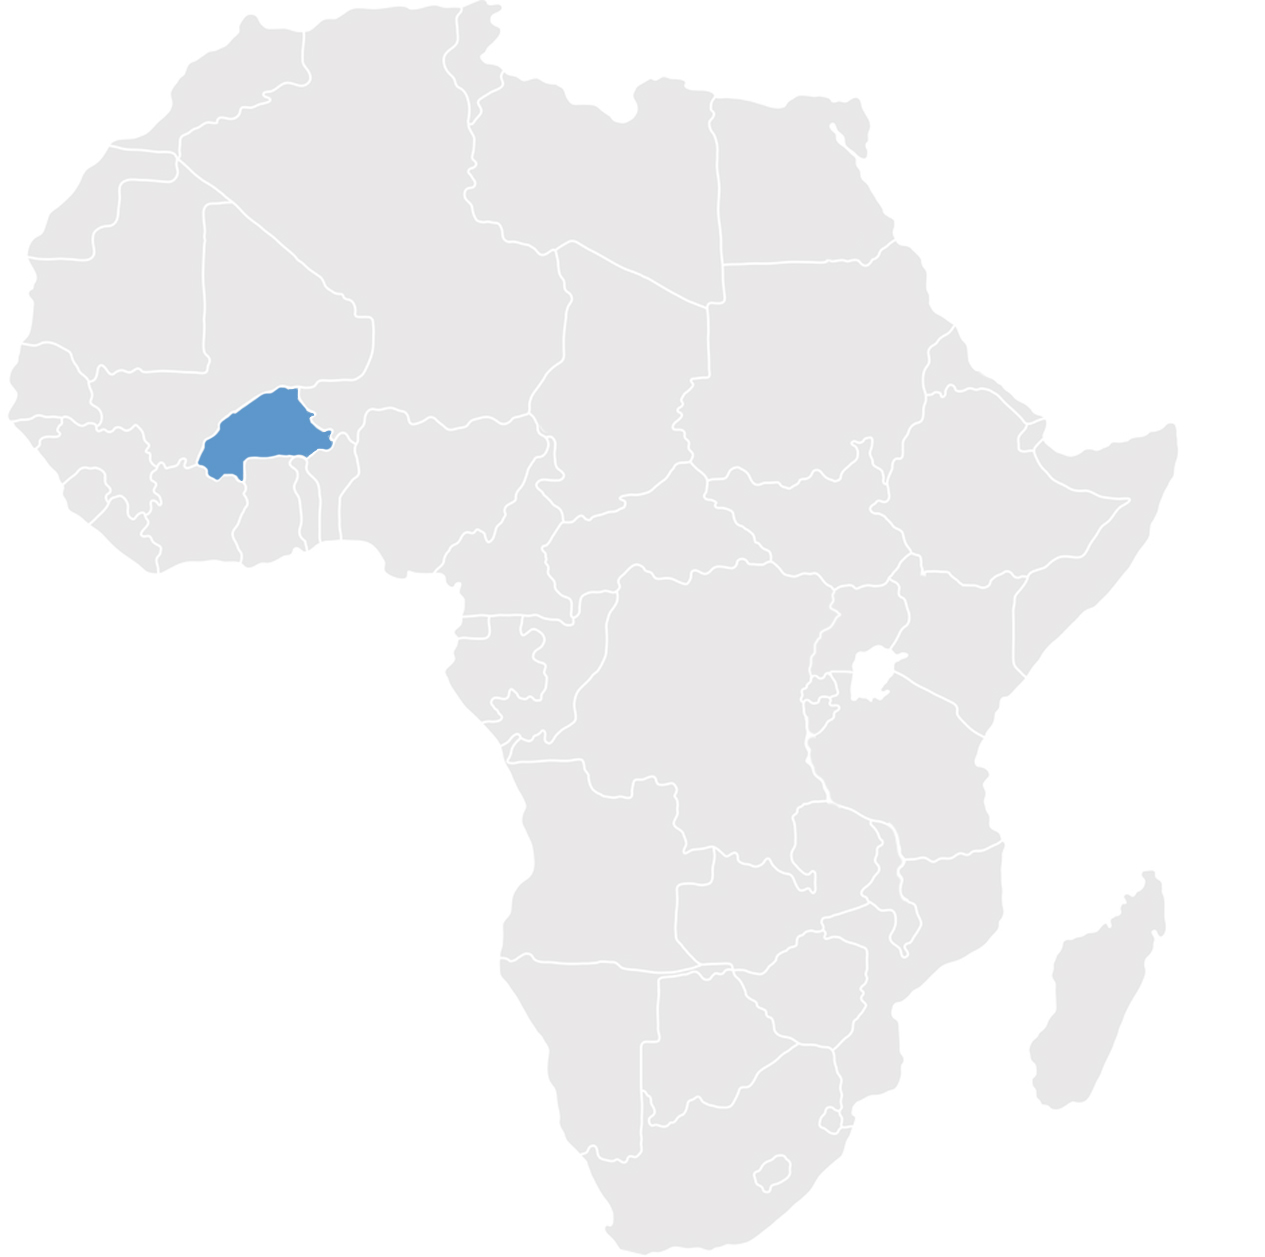 Gray map of Africa with Burkina Faso in blue